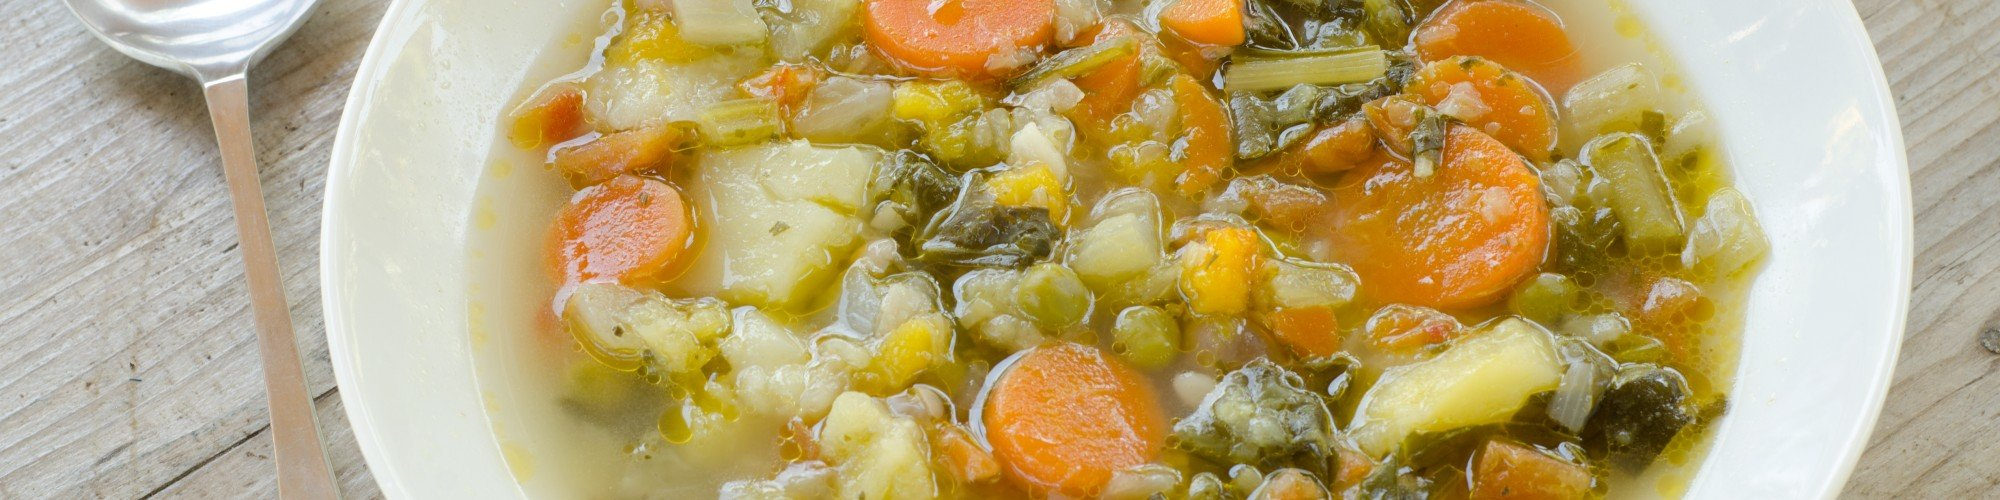 Victory Garden Vegetable Soup Recipe by Nancy Alexander